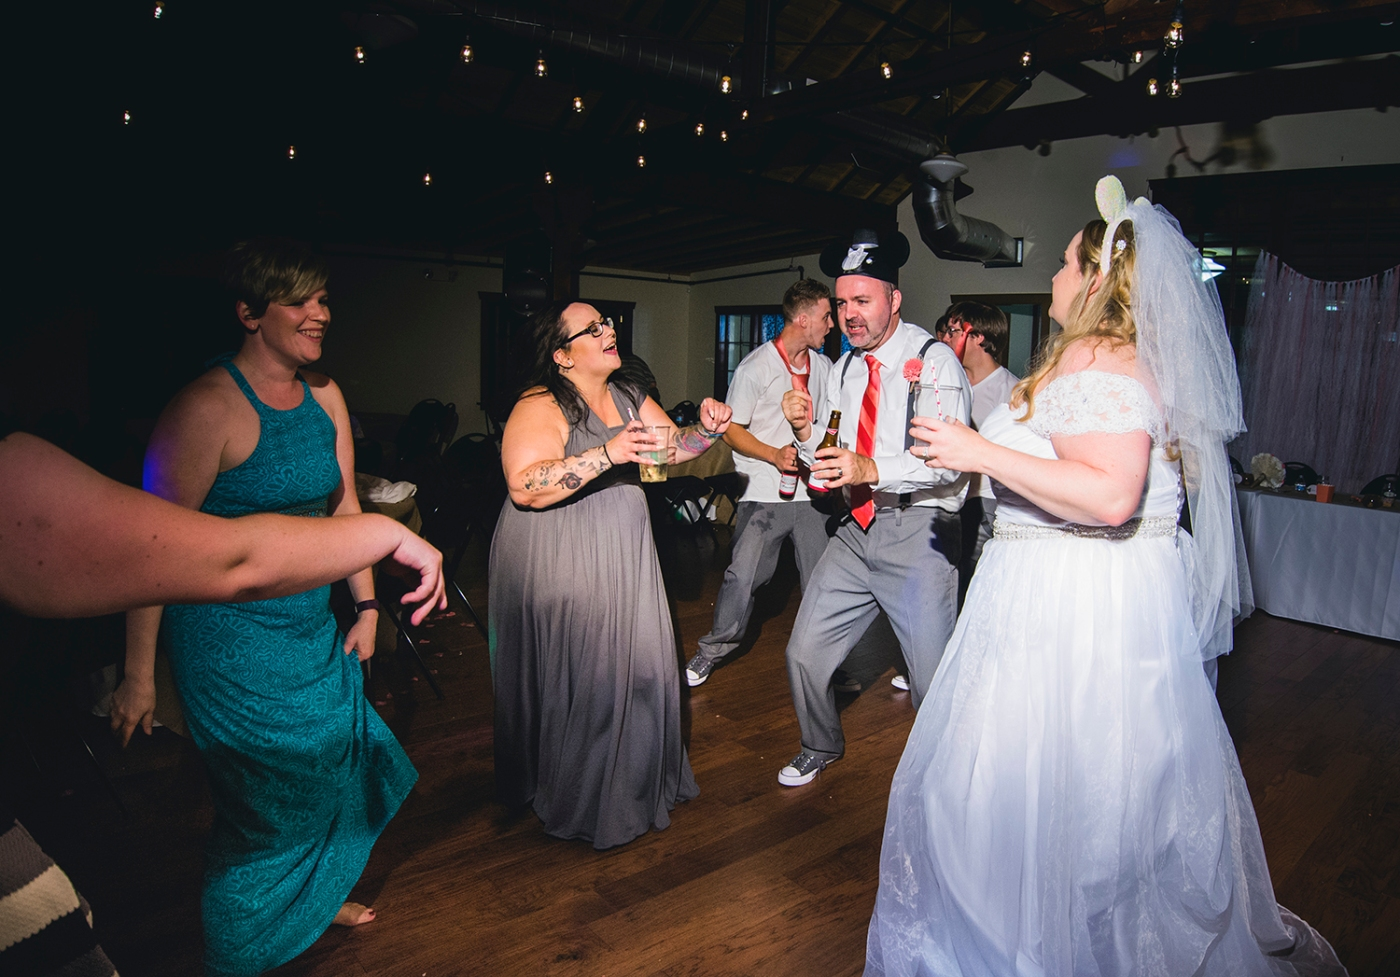 Jane_S_Seattle_photography_Kadie_and_Steve_2016_Des_Moines_Marina_Wedding_DSC_2907